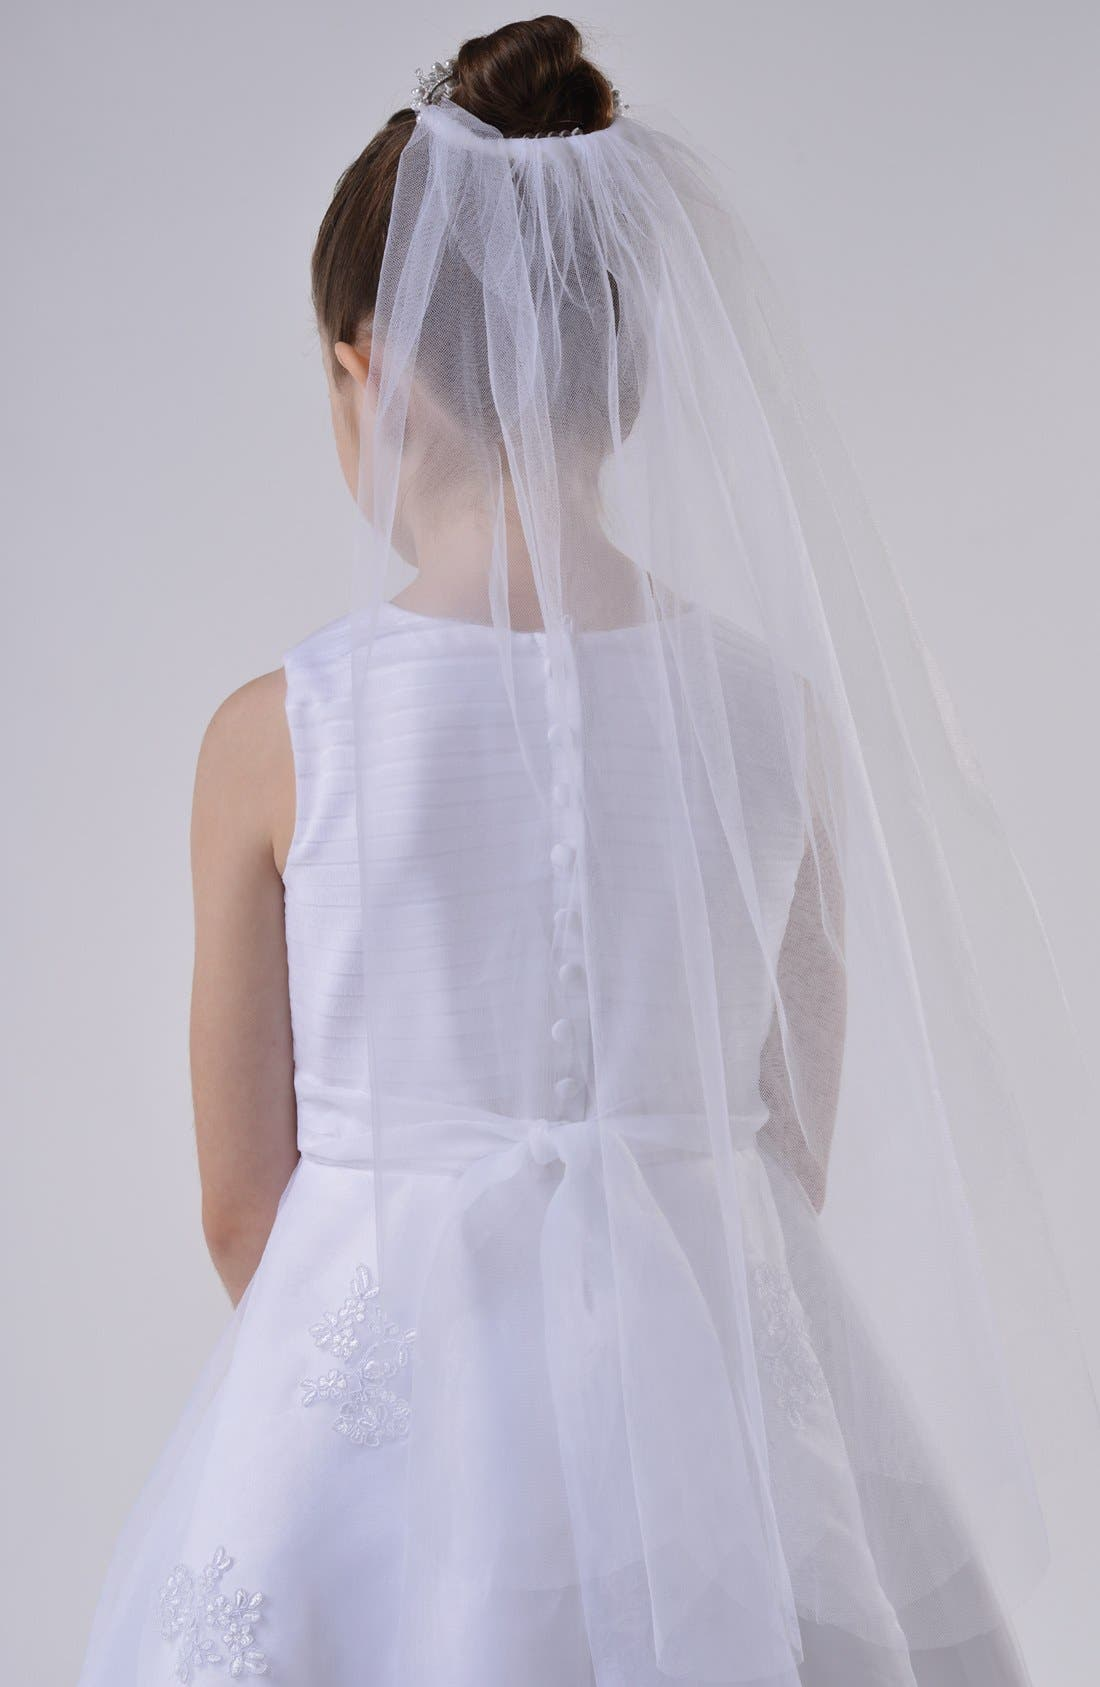 Bun Wrap Communion Veil,                             Alternate thumbnail 2, color,                             White